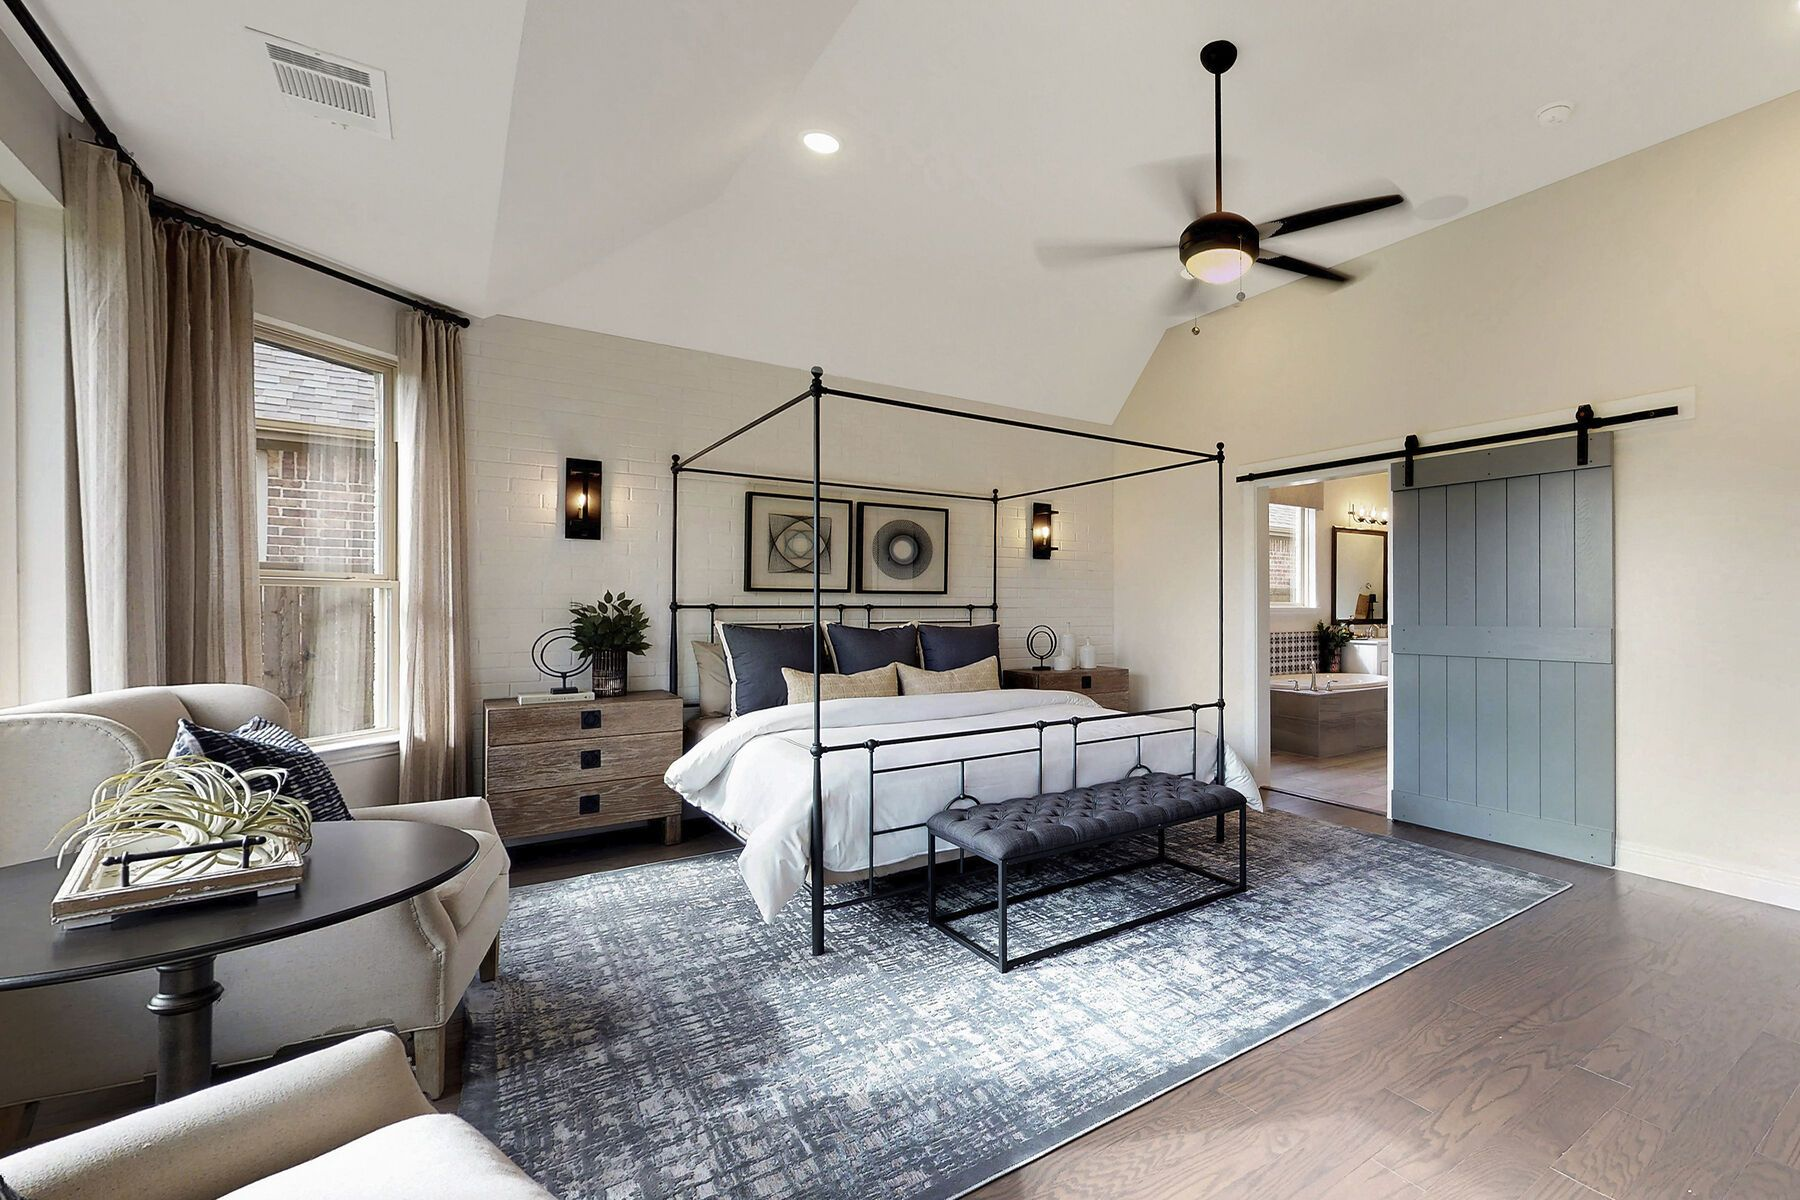 Bedroom featured in the Zacate By M/I Homes in Fort Worth, TX